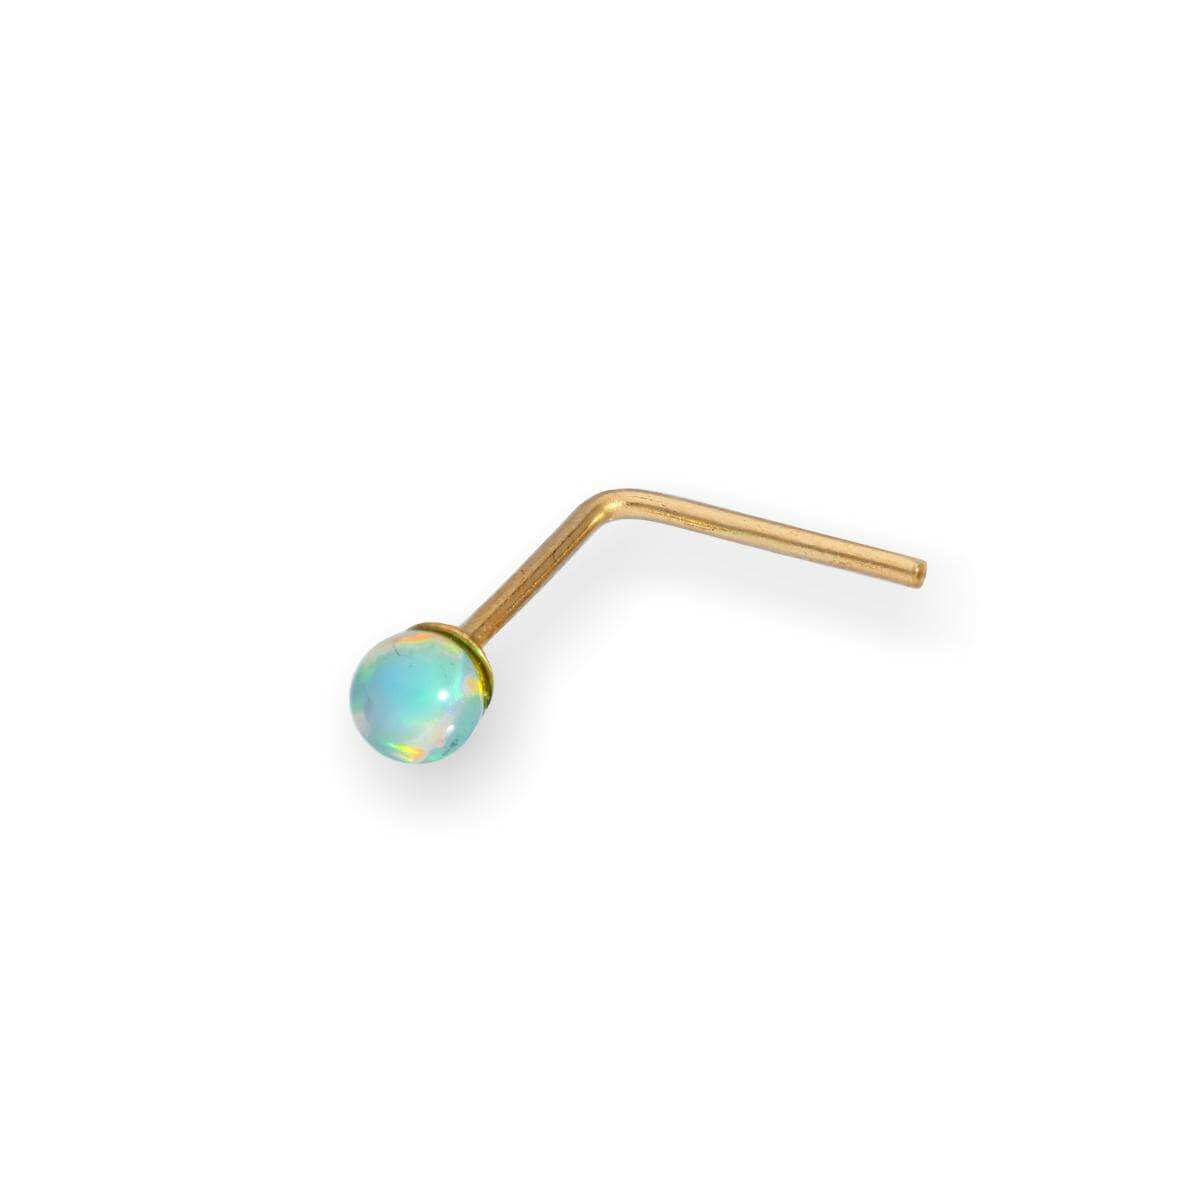 9ct Gold 2mm Light Blue Opal Stone Nose Stud